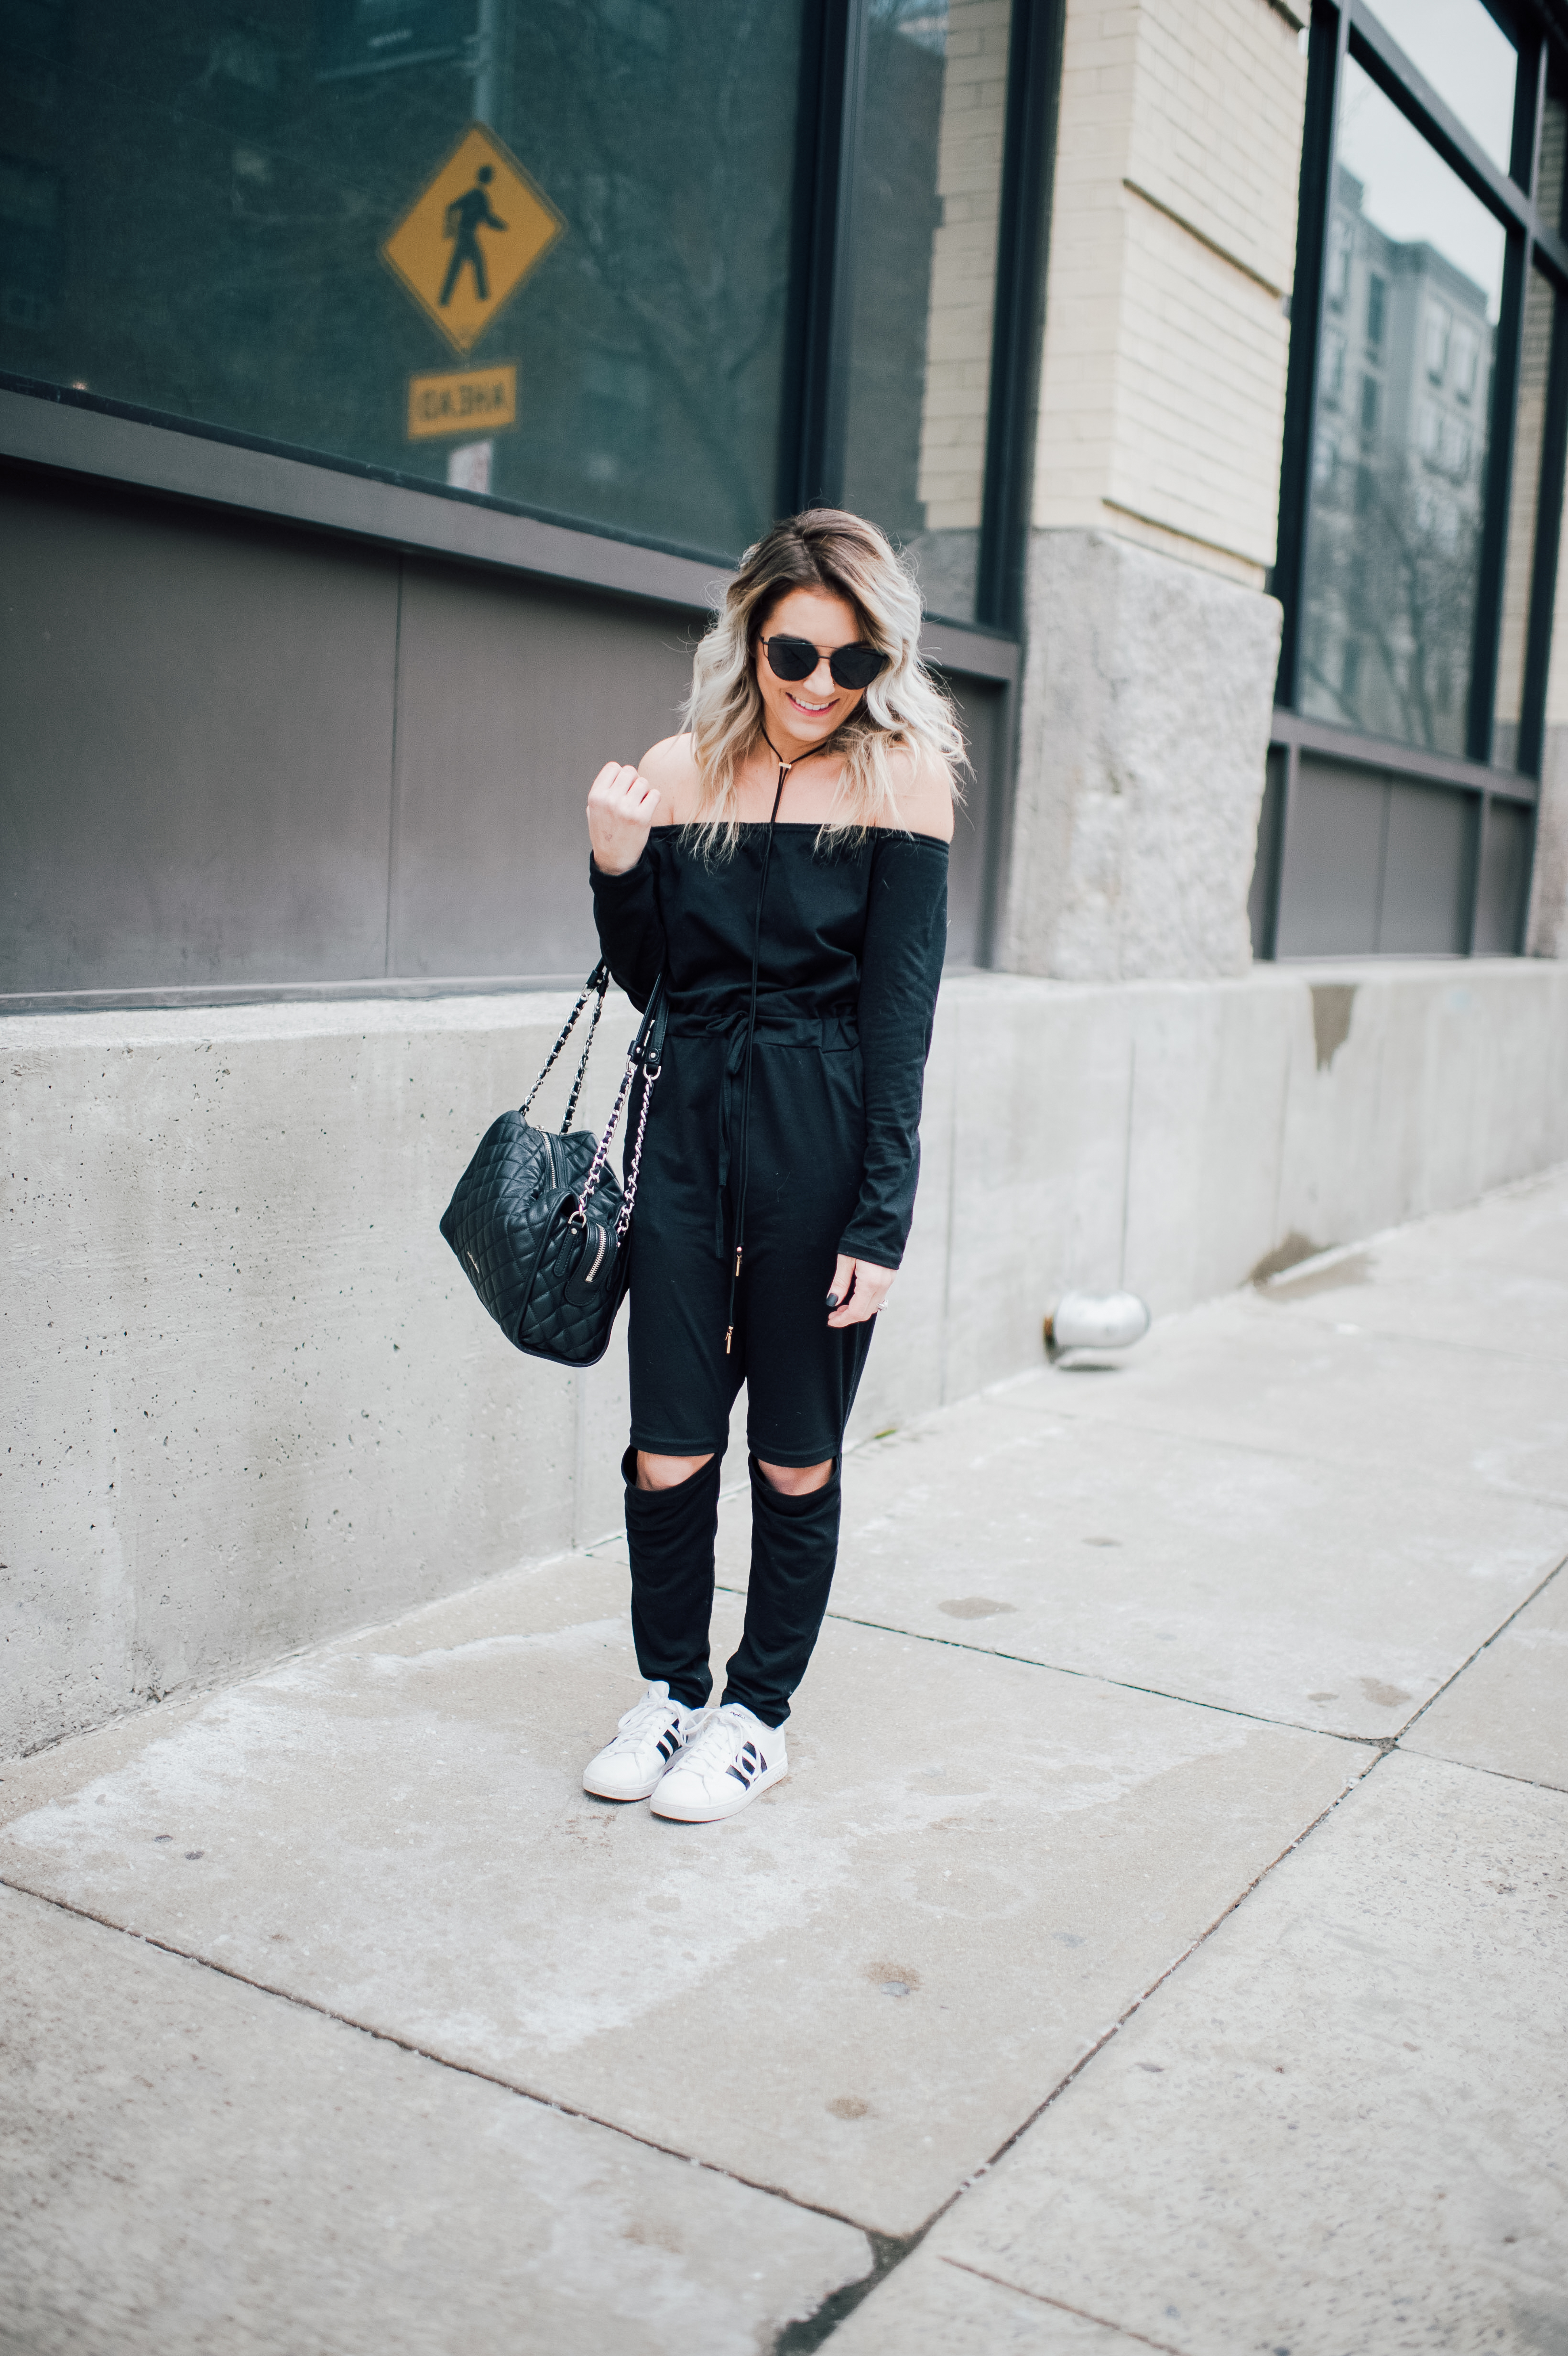 Currently crushing: jumpsuits for women. They are the perfect choice for casual weekend wear or a night out with the girls. Day to night look...check!